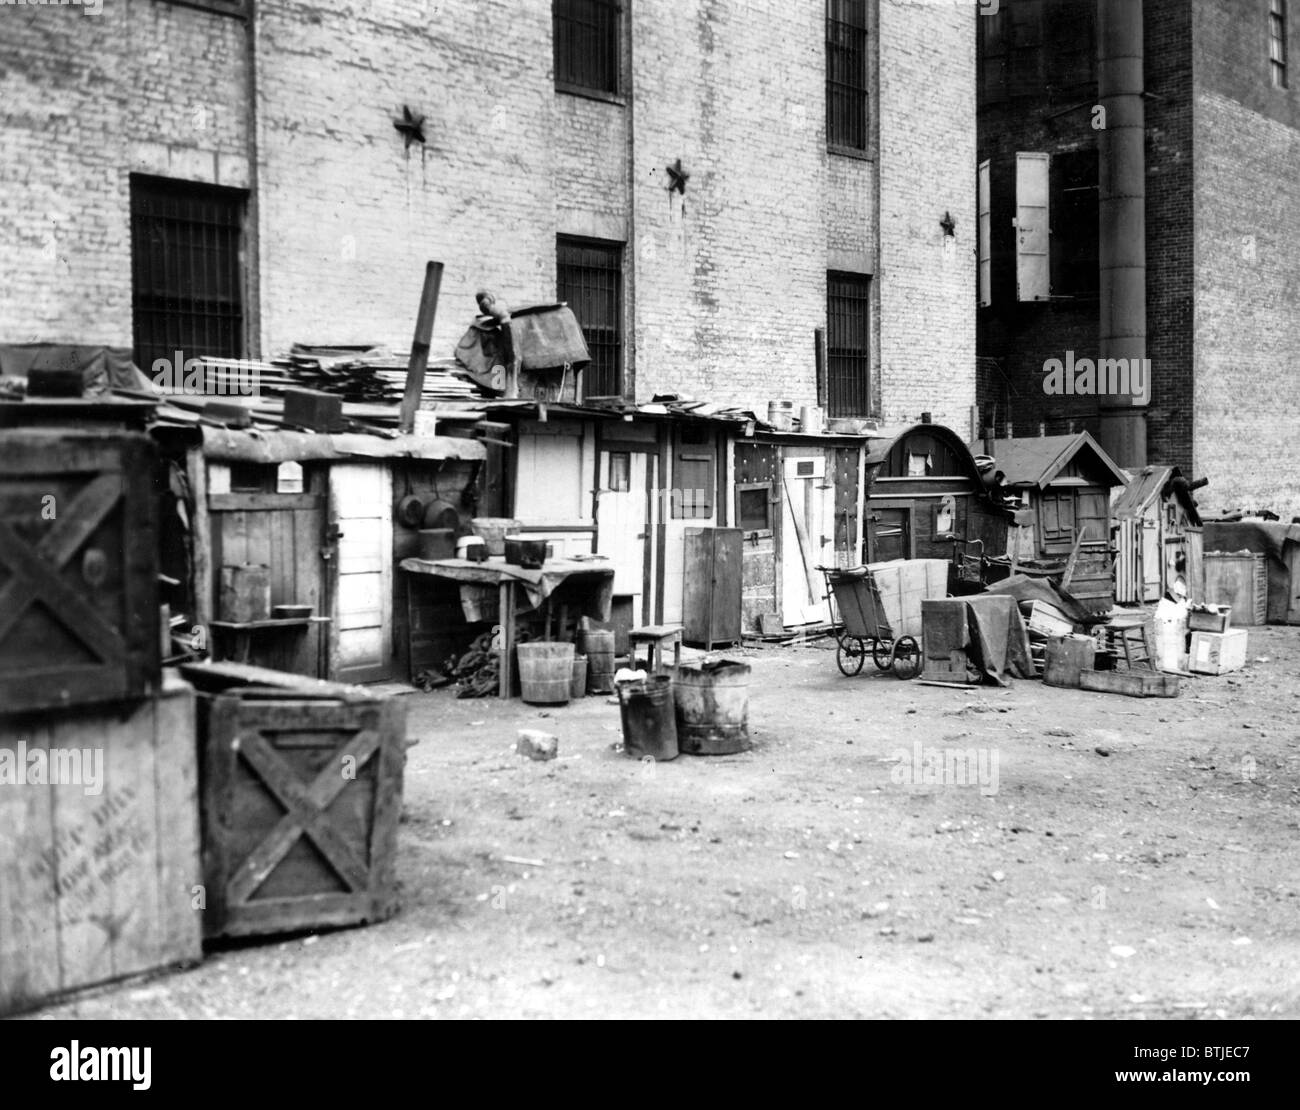 Great Depression, Shantytown at West Houston Street, New York City, N.Y., December 1934 - Stock Image